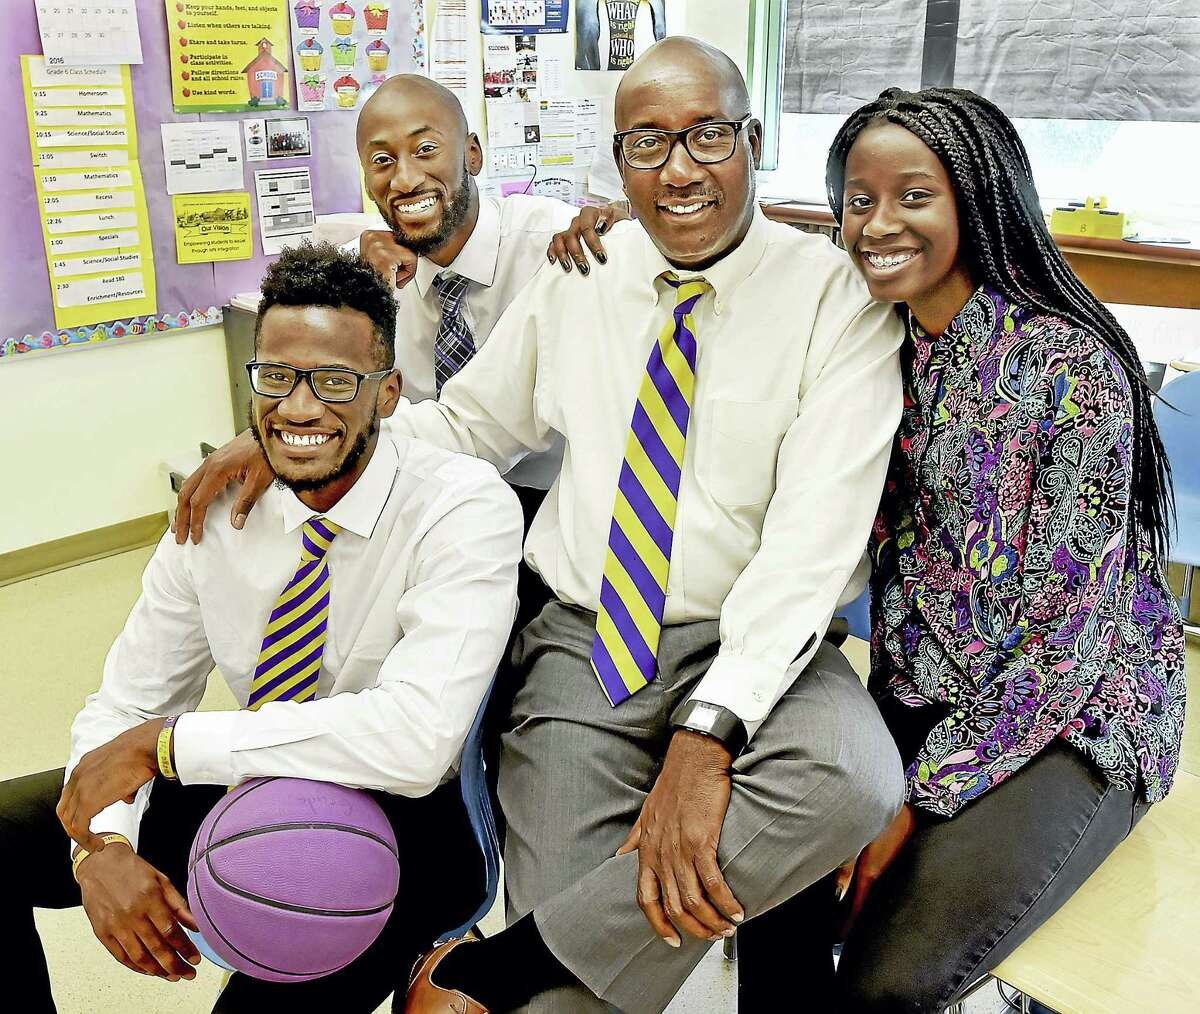 Larry Conaway, 62, the principal at New Light H.S and Riverside Educational Academy in New Haven with his son, Alexander, 23, a Trinsition Fellow and assistant basketball coach at Trinity College, Adham, 26, a teacher at the Davis St. School and Nyka, 15, a rising sophomore at Wilbur Cross, photographed in Adham's classroom, Tuesday, June 14, 2016.